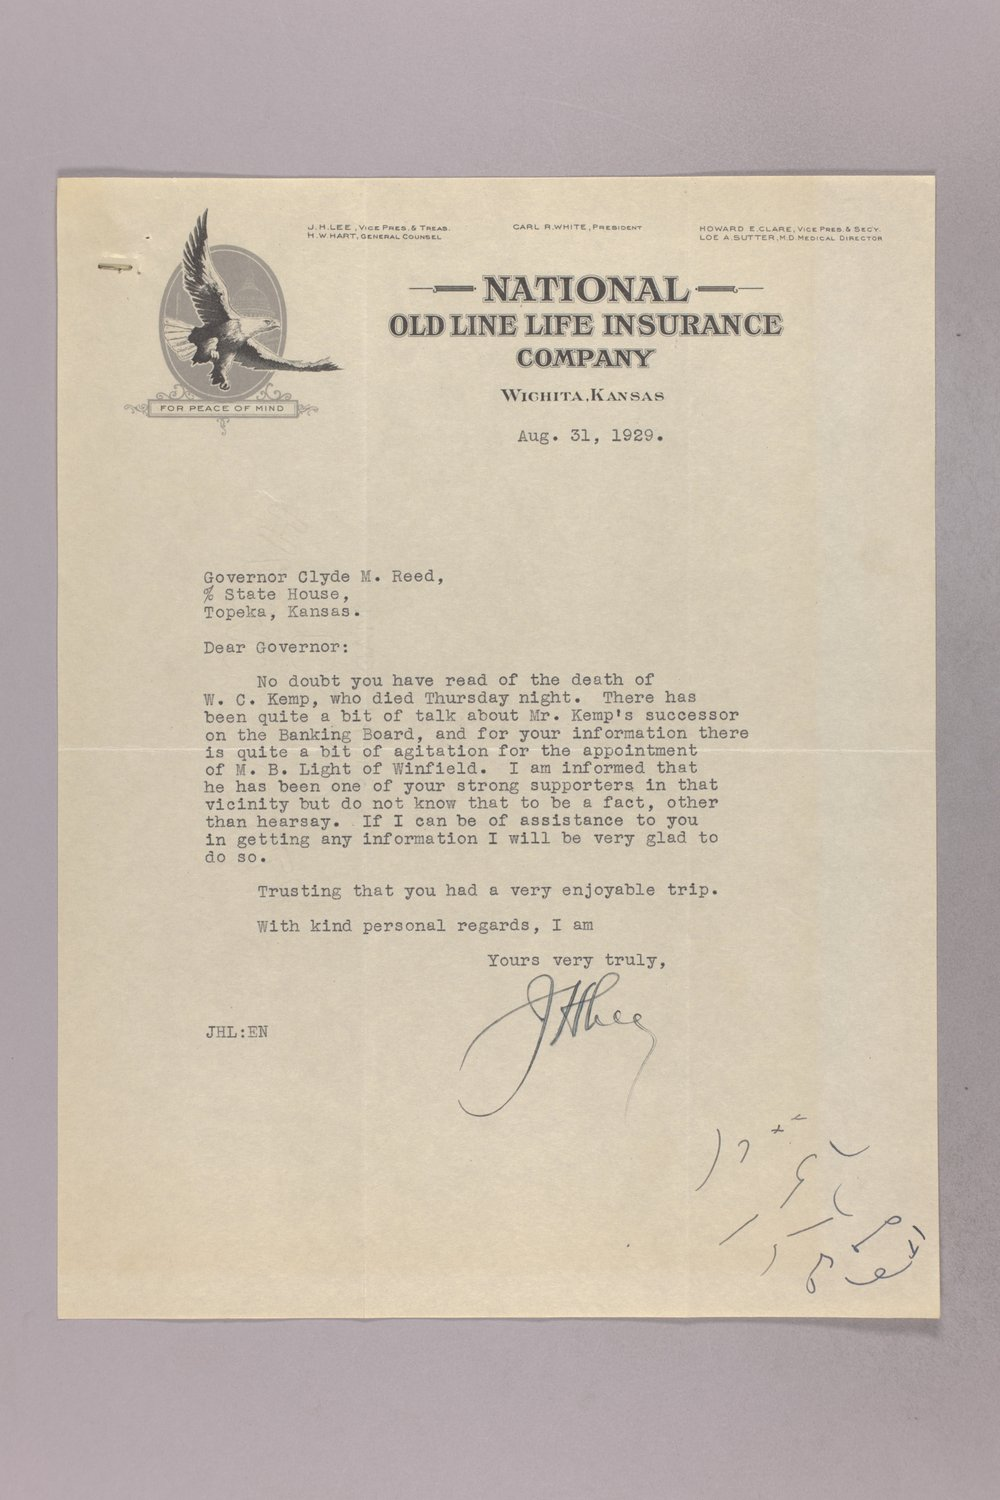 Governor Clyde M. Reed correspondence, Banking Board - 5